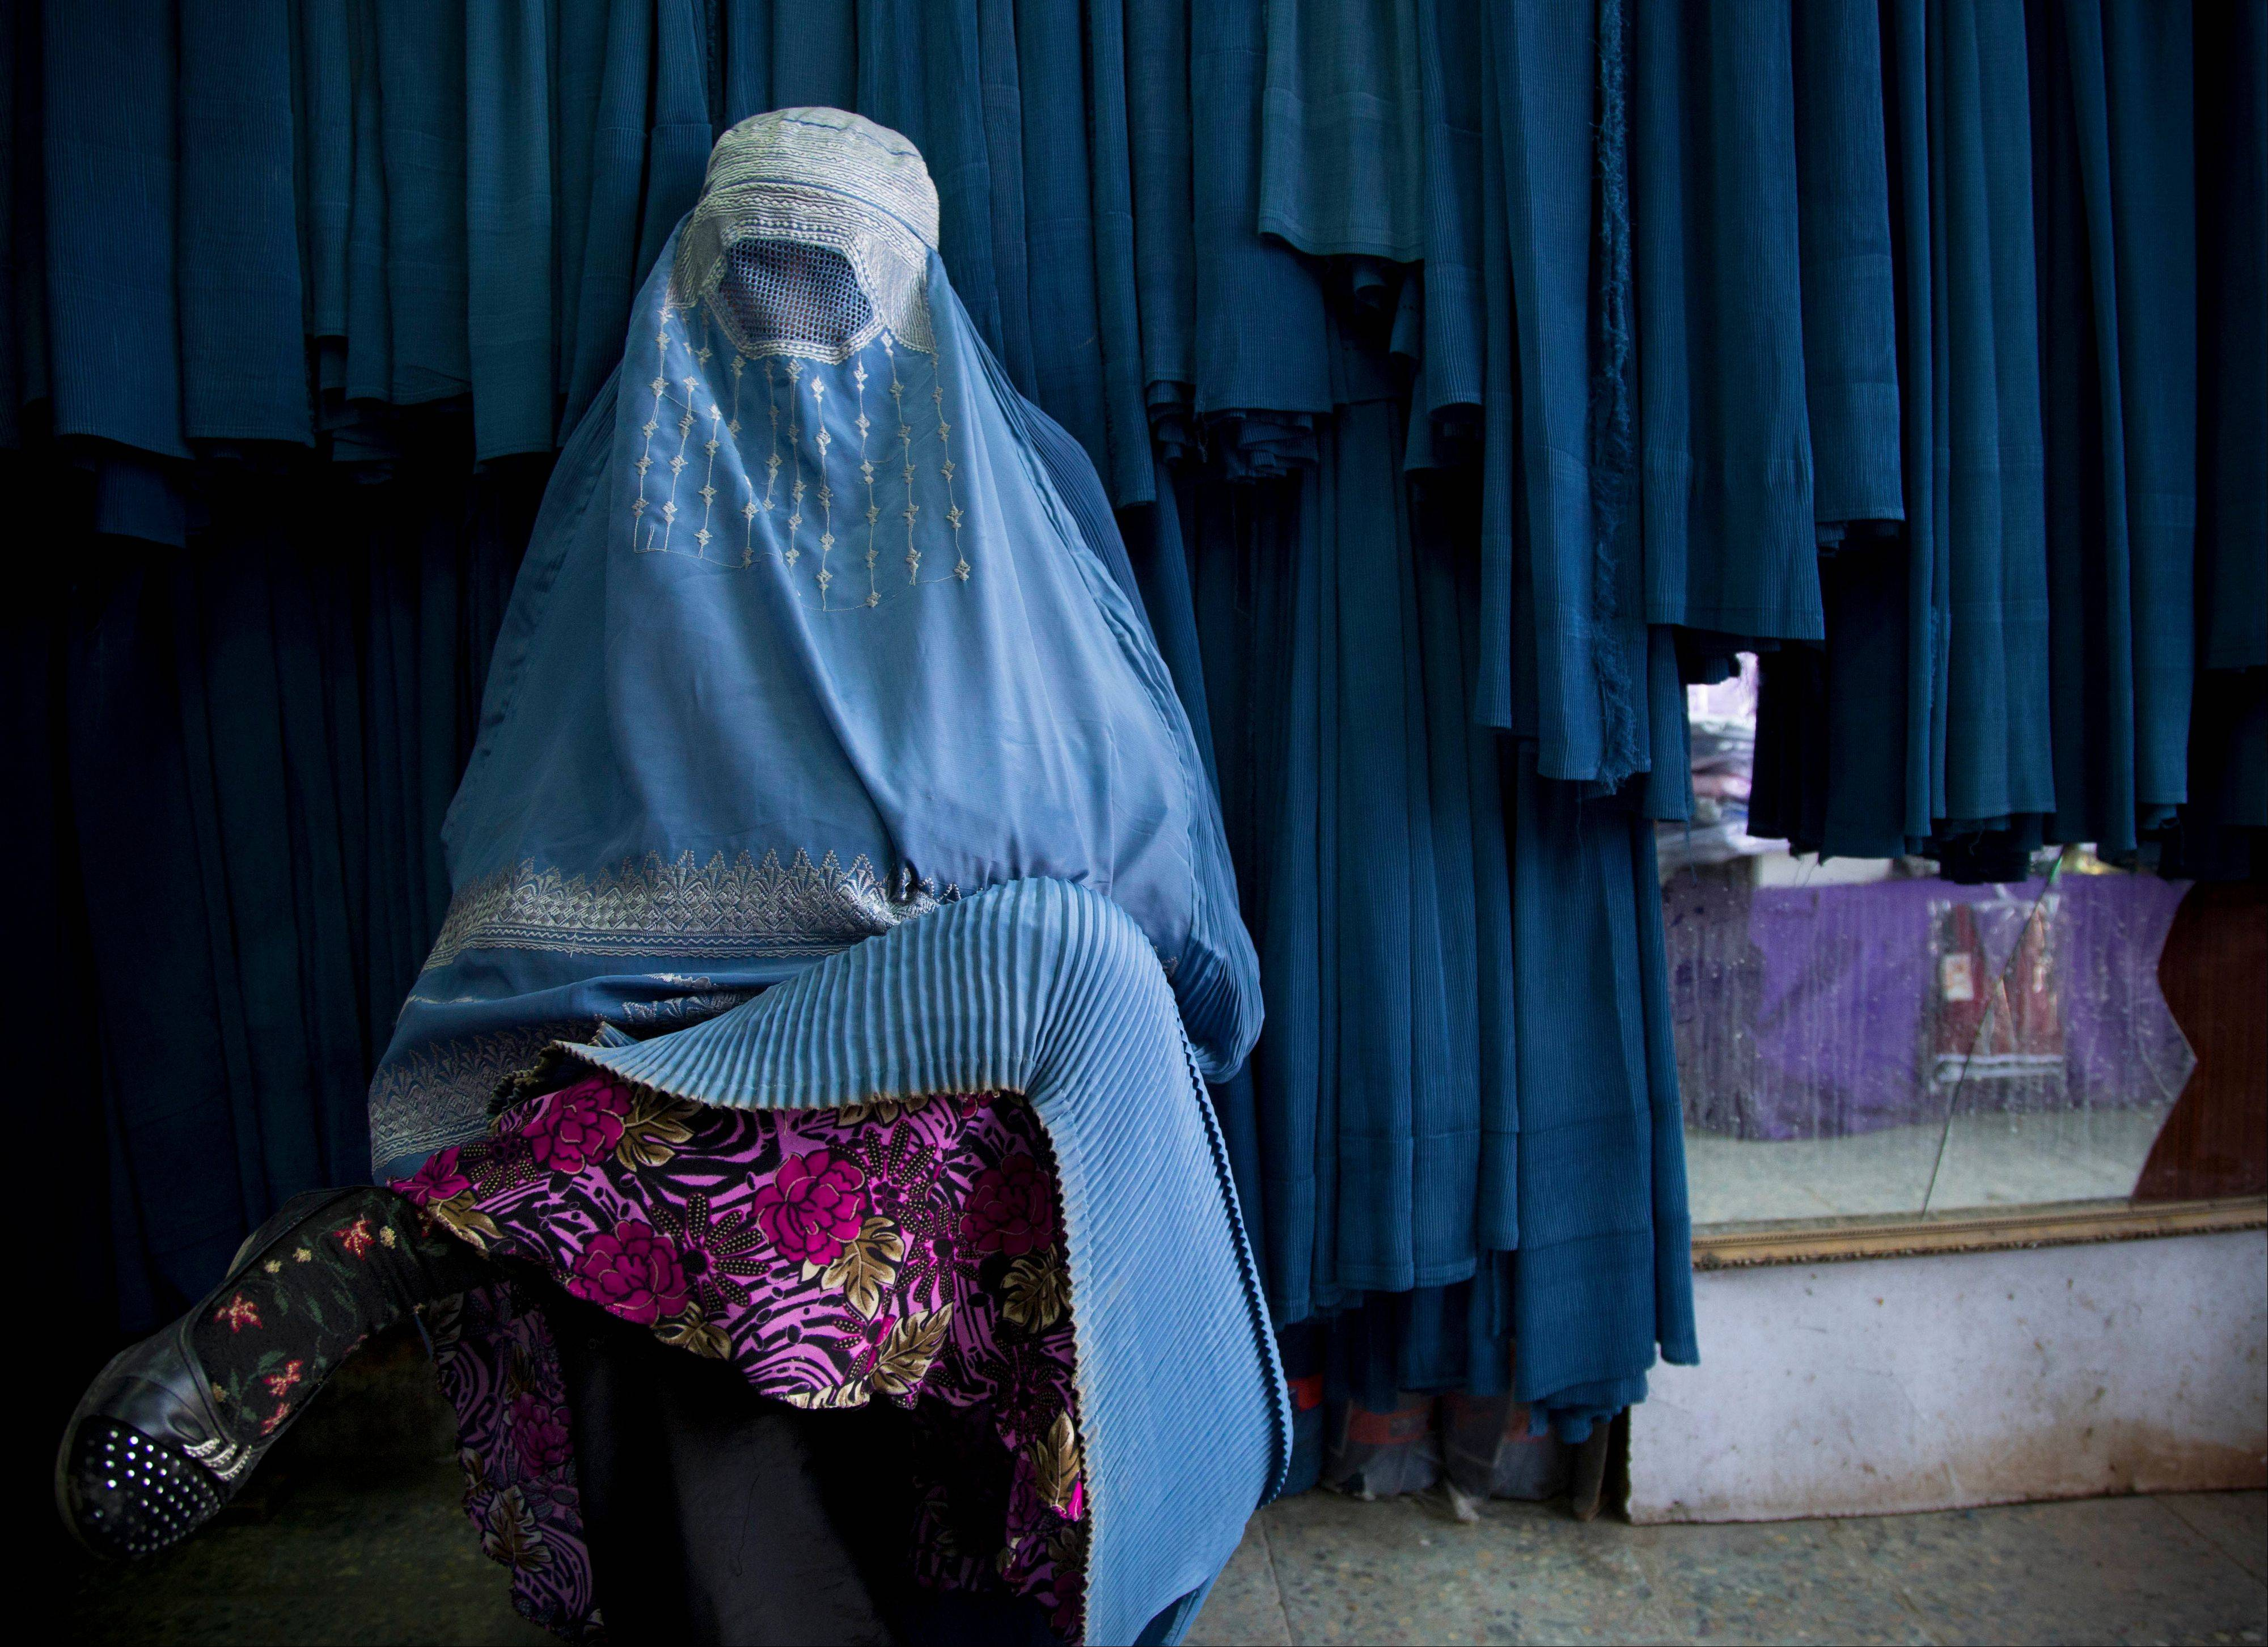 An Afghan woman waits to get in line to try on a new burqa at a shop in the old town of Kabul, Afghanistan. Despite advances in women's rights, Afghanistan remains a deeply conservative country and most women continue to wear the Burqa. But tradesmen say times are changing in Kabul at least, with demand for burqas declining as young women going to school and taking office jobs refuse to wear the cumbersome garments.